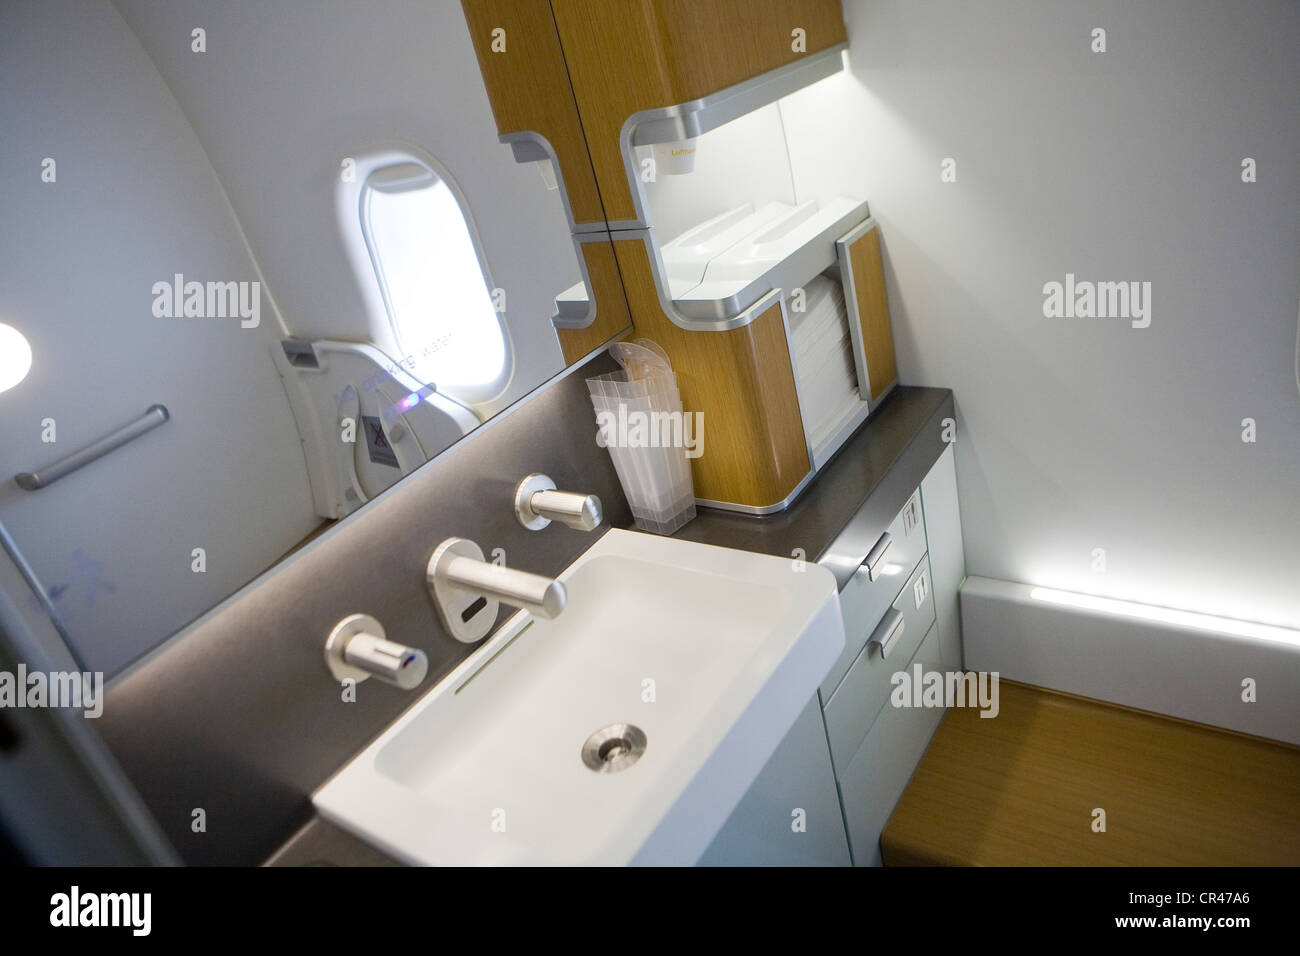 The Bathroom of a Lufthansa Boeing 747-8. - Stock Image